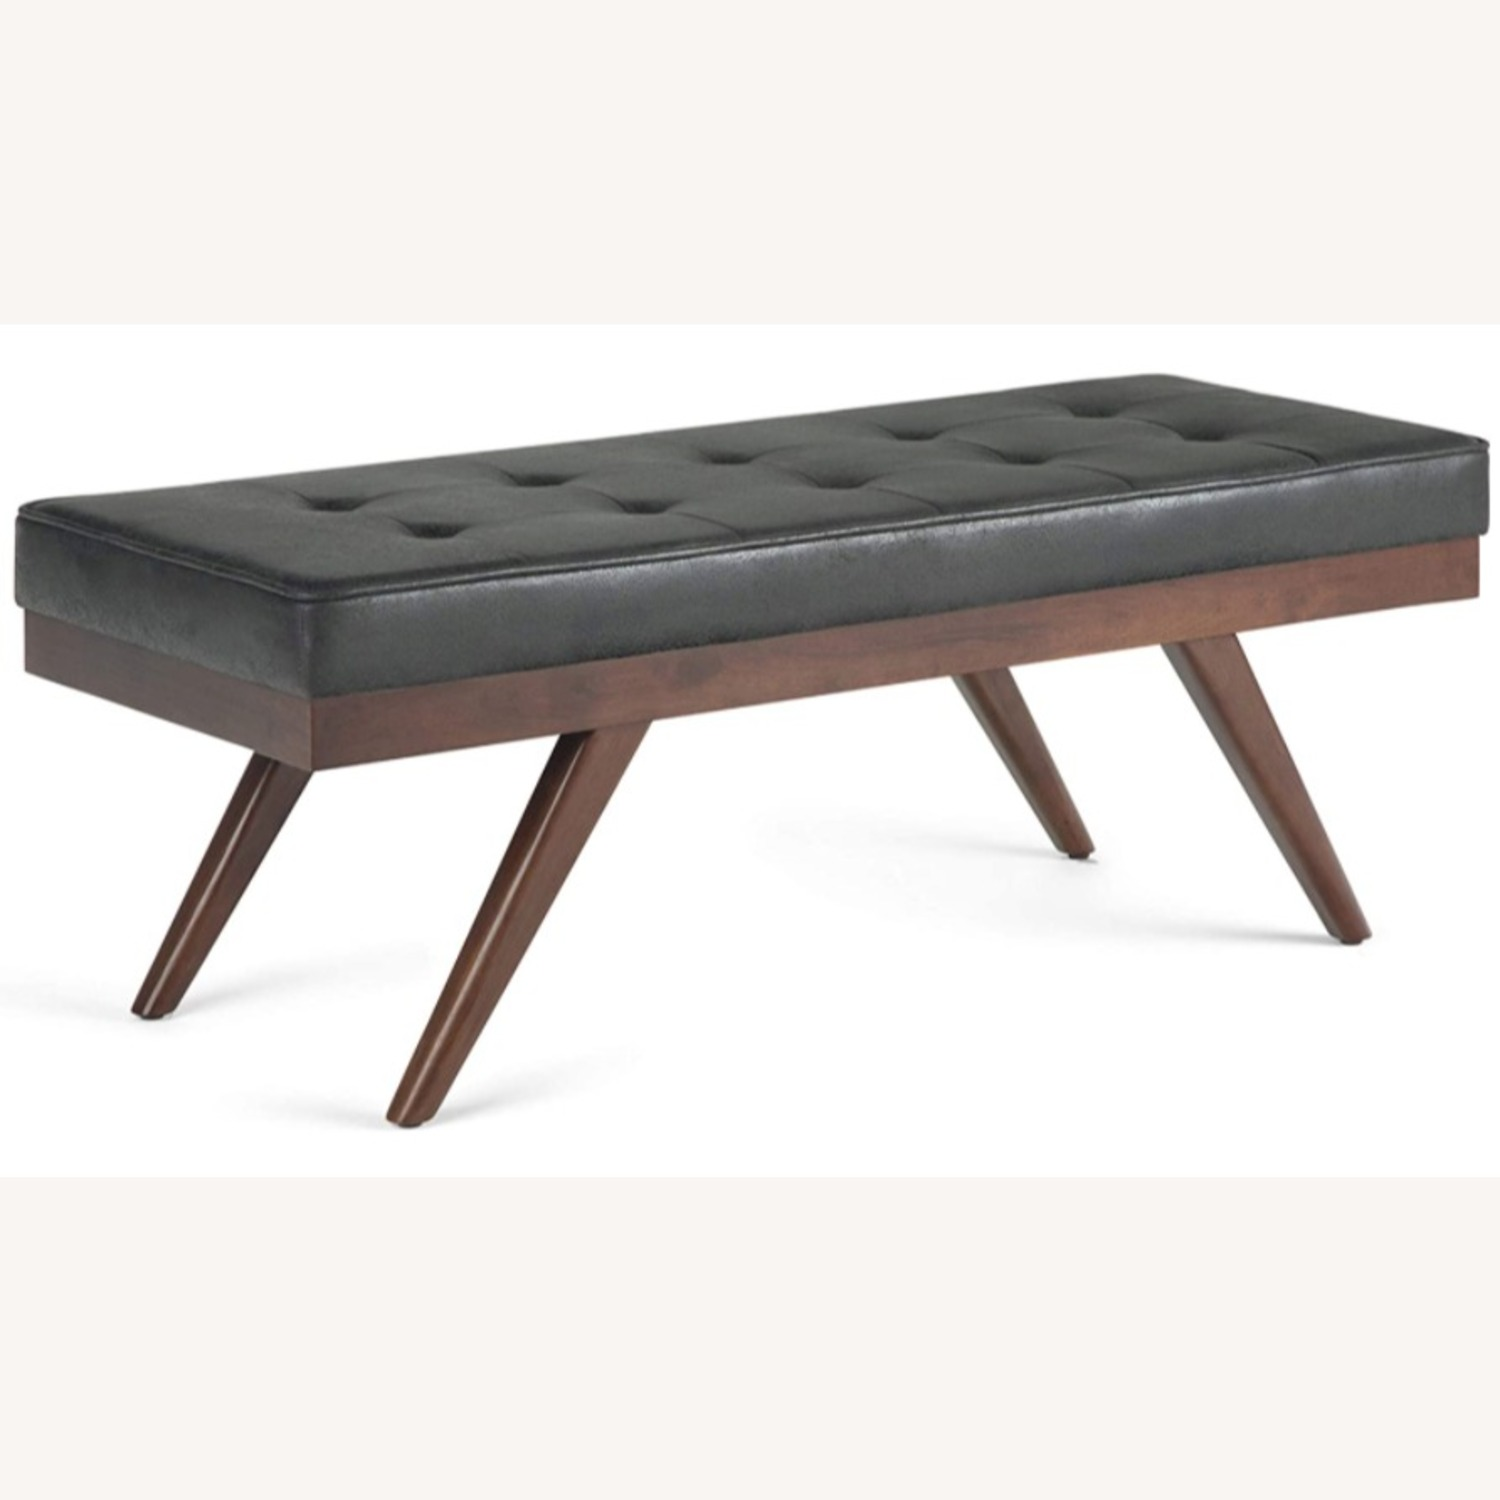 Mid Century Modern Faux Leather Ottoman Bench - image-1